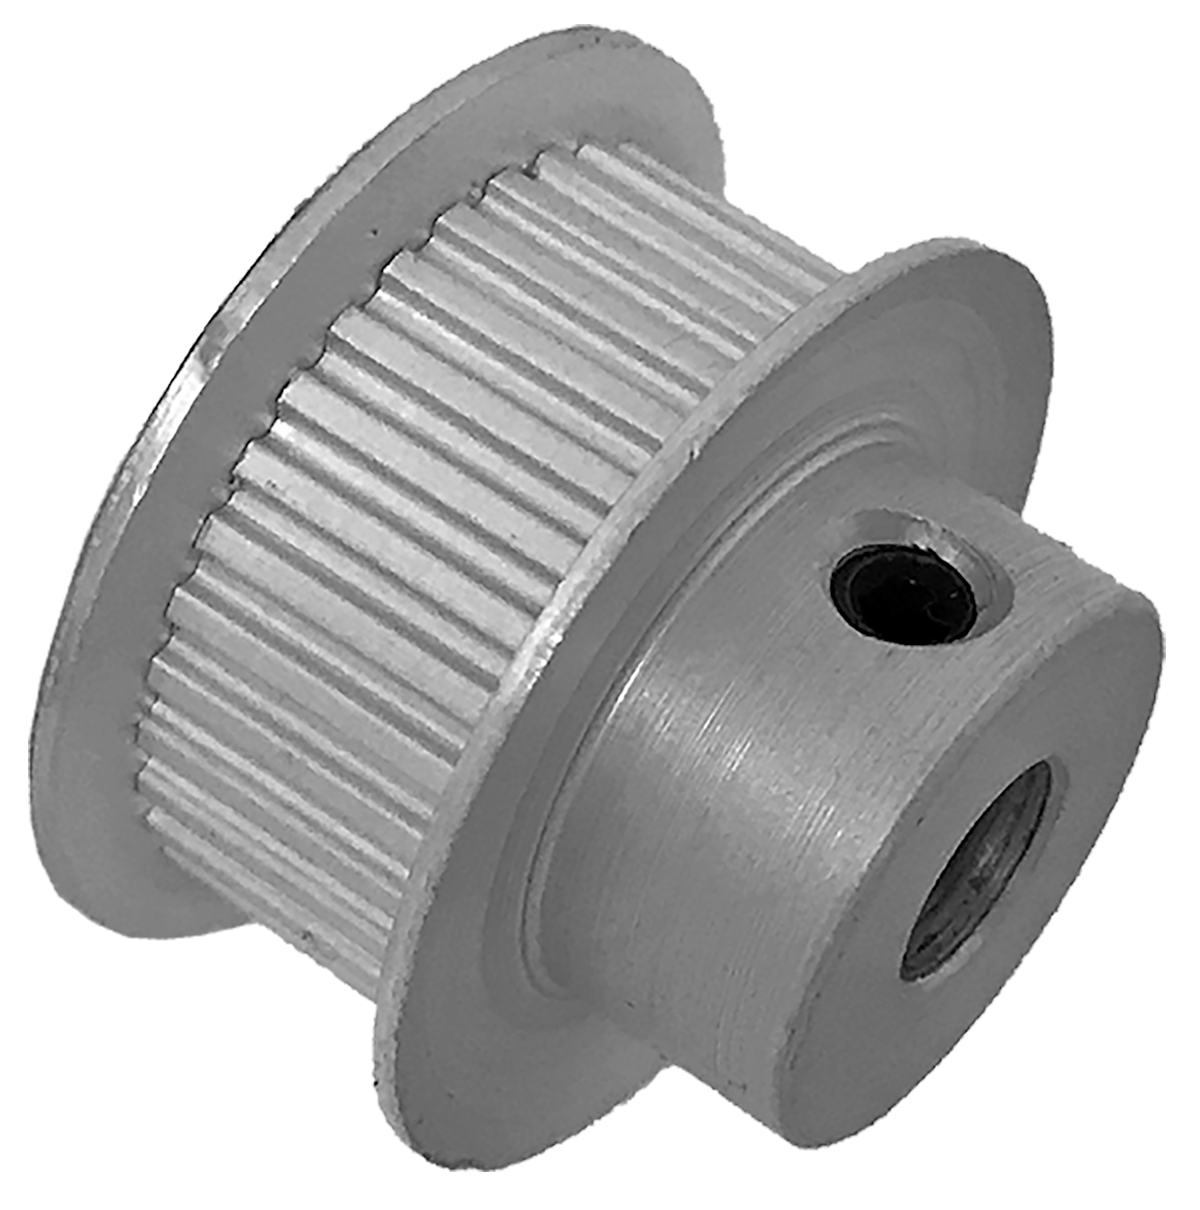 34LT187-6FA3 - Aluminum Imperial Pitch Pulleys